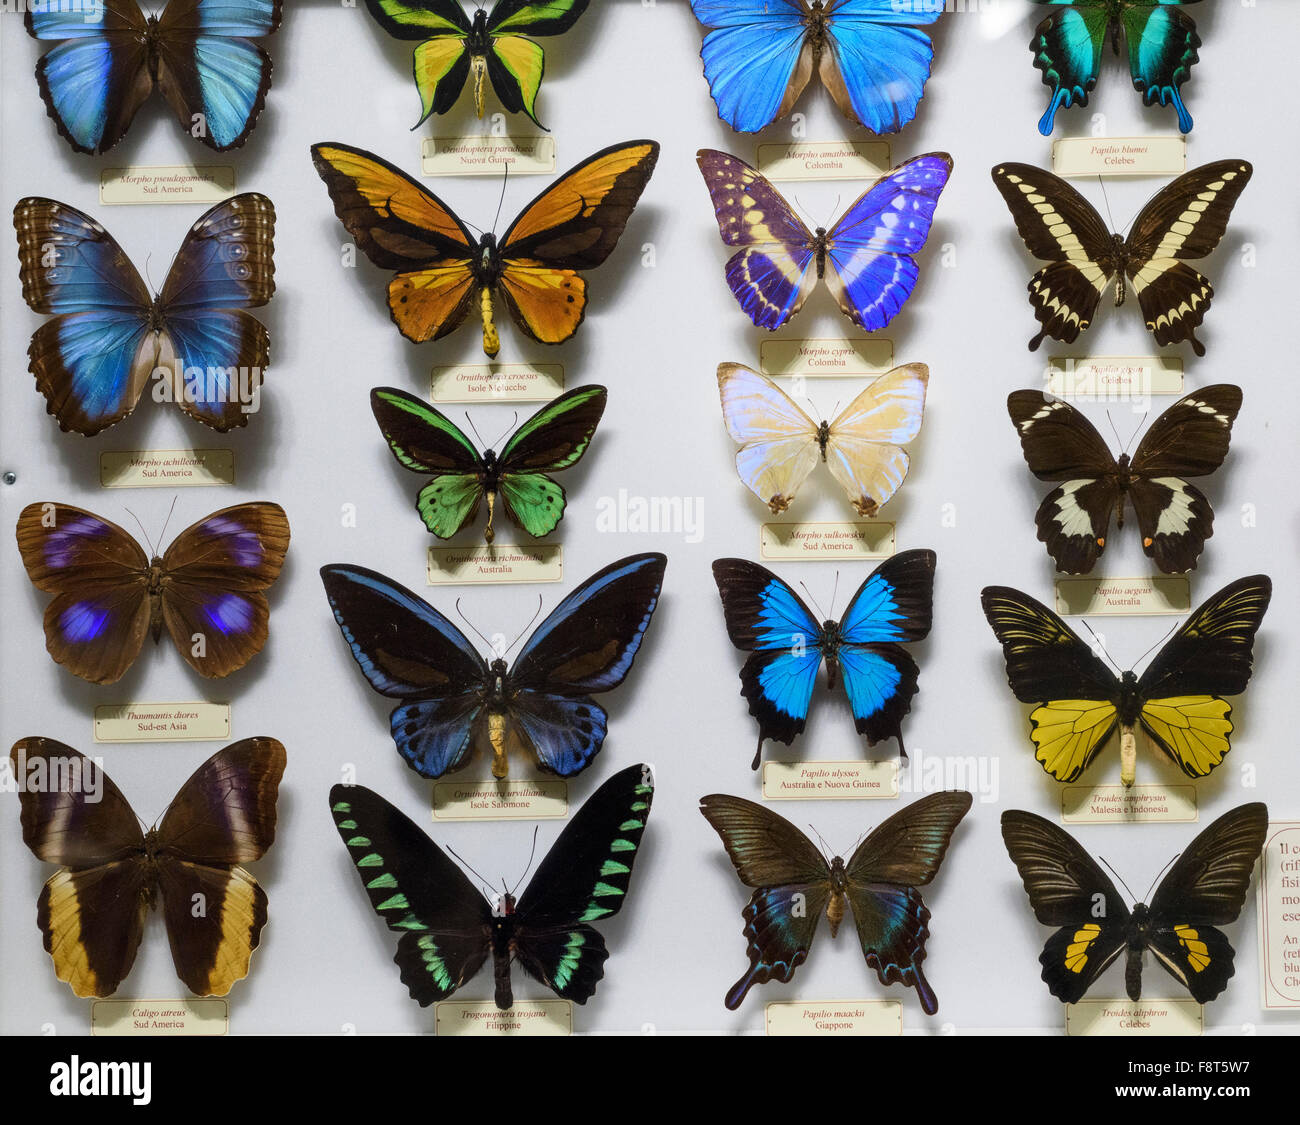 Florence. Italy. Colouful display of Butterflies at La Specola, Museum of Zoology and Natural History. - Stock Image